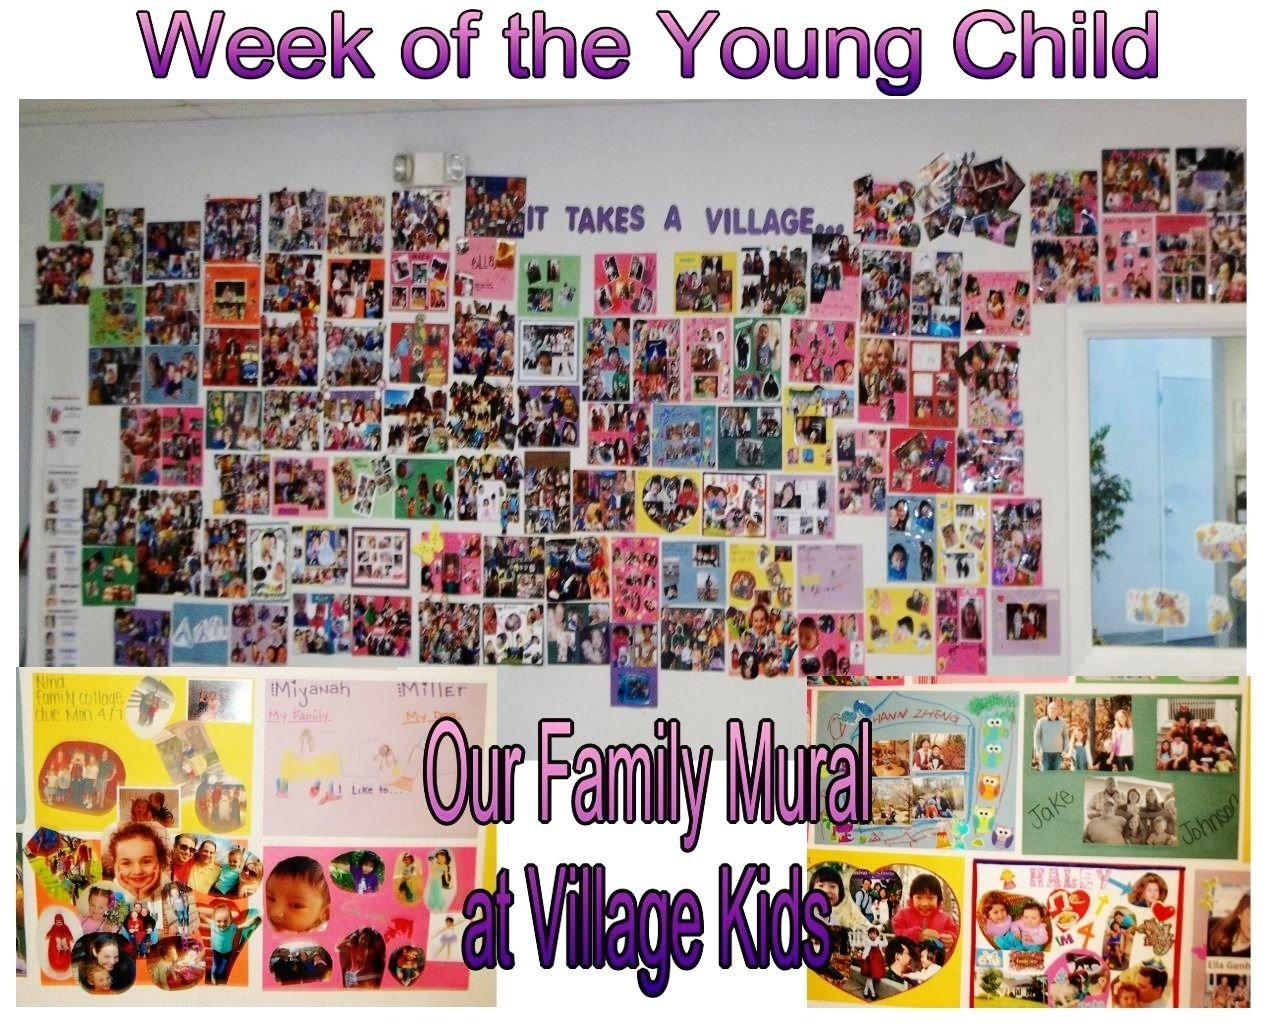 10 Lovely Week Of The Young Child Ideas great way to share week of the young child with out families